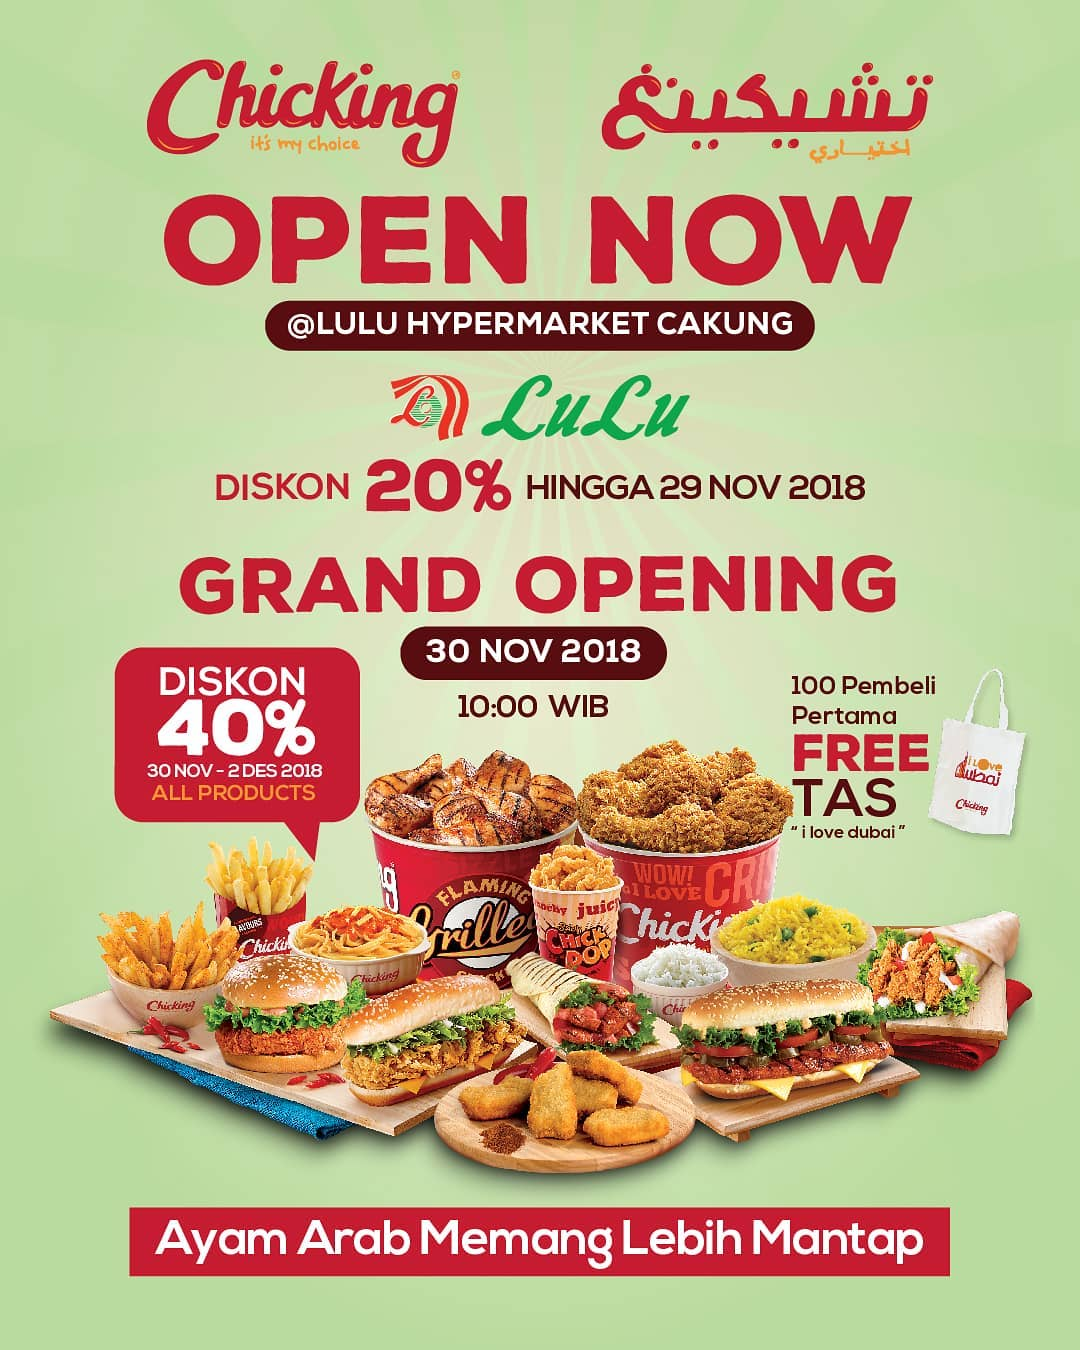 LuluStore - Promo Opening & Diskon 40% di Chicking Indonesia (s.d 02 Des 2018)